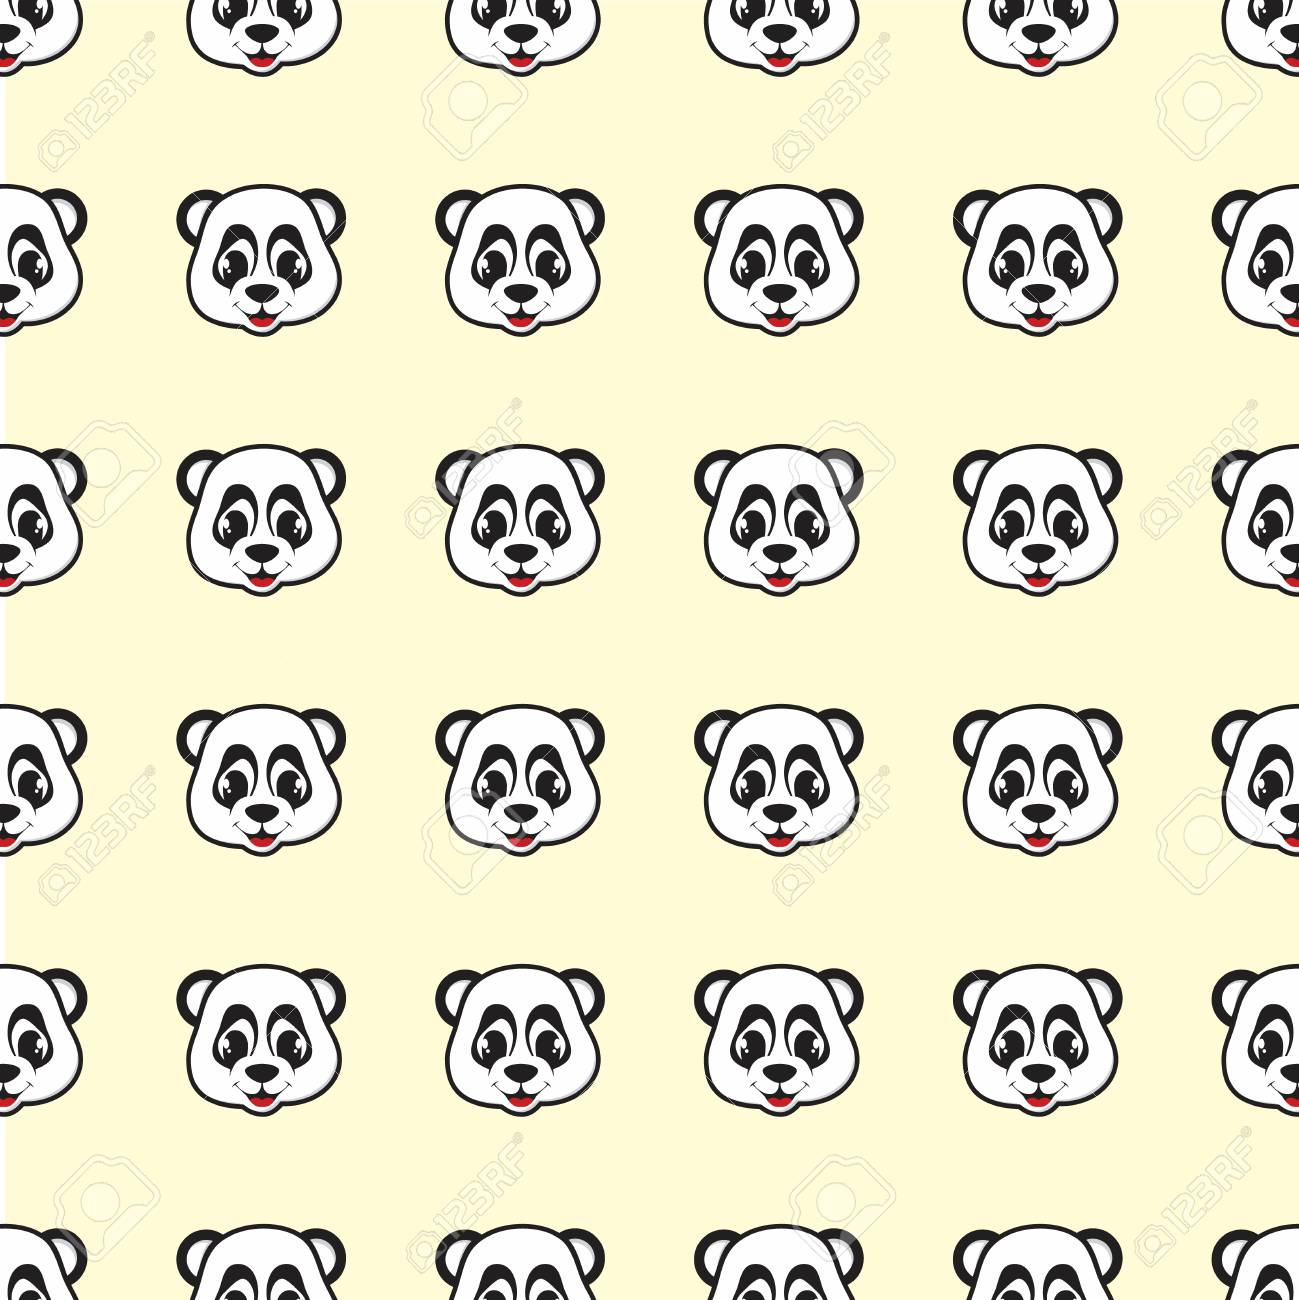 Funny design smile Panda cartoon seamless pattern for background and wallpaper. Animal wildlife vector background